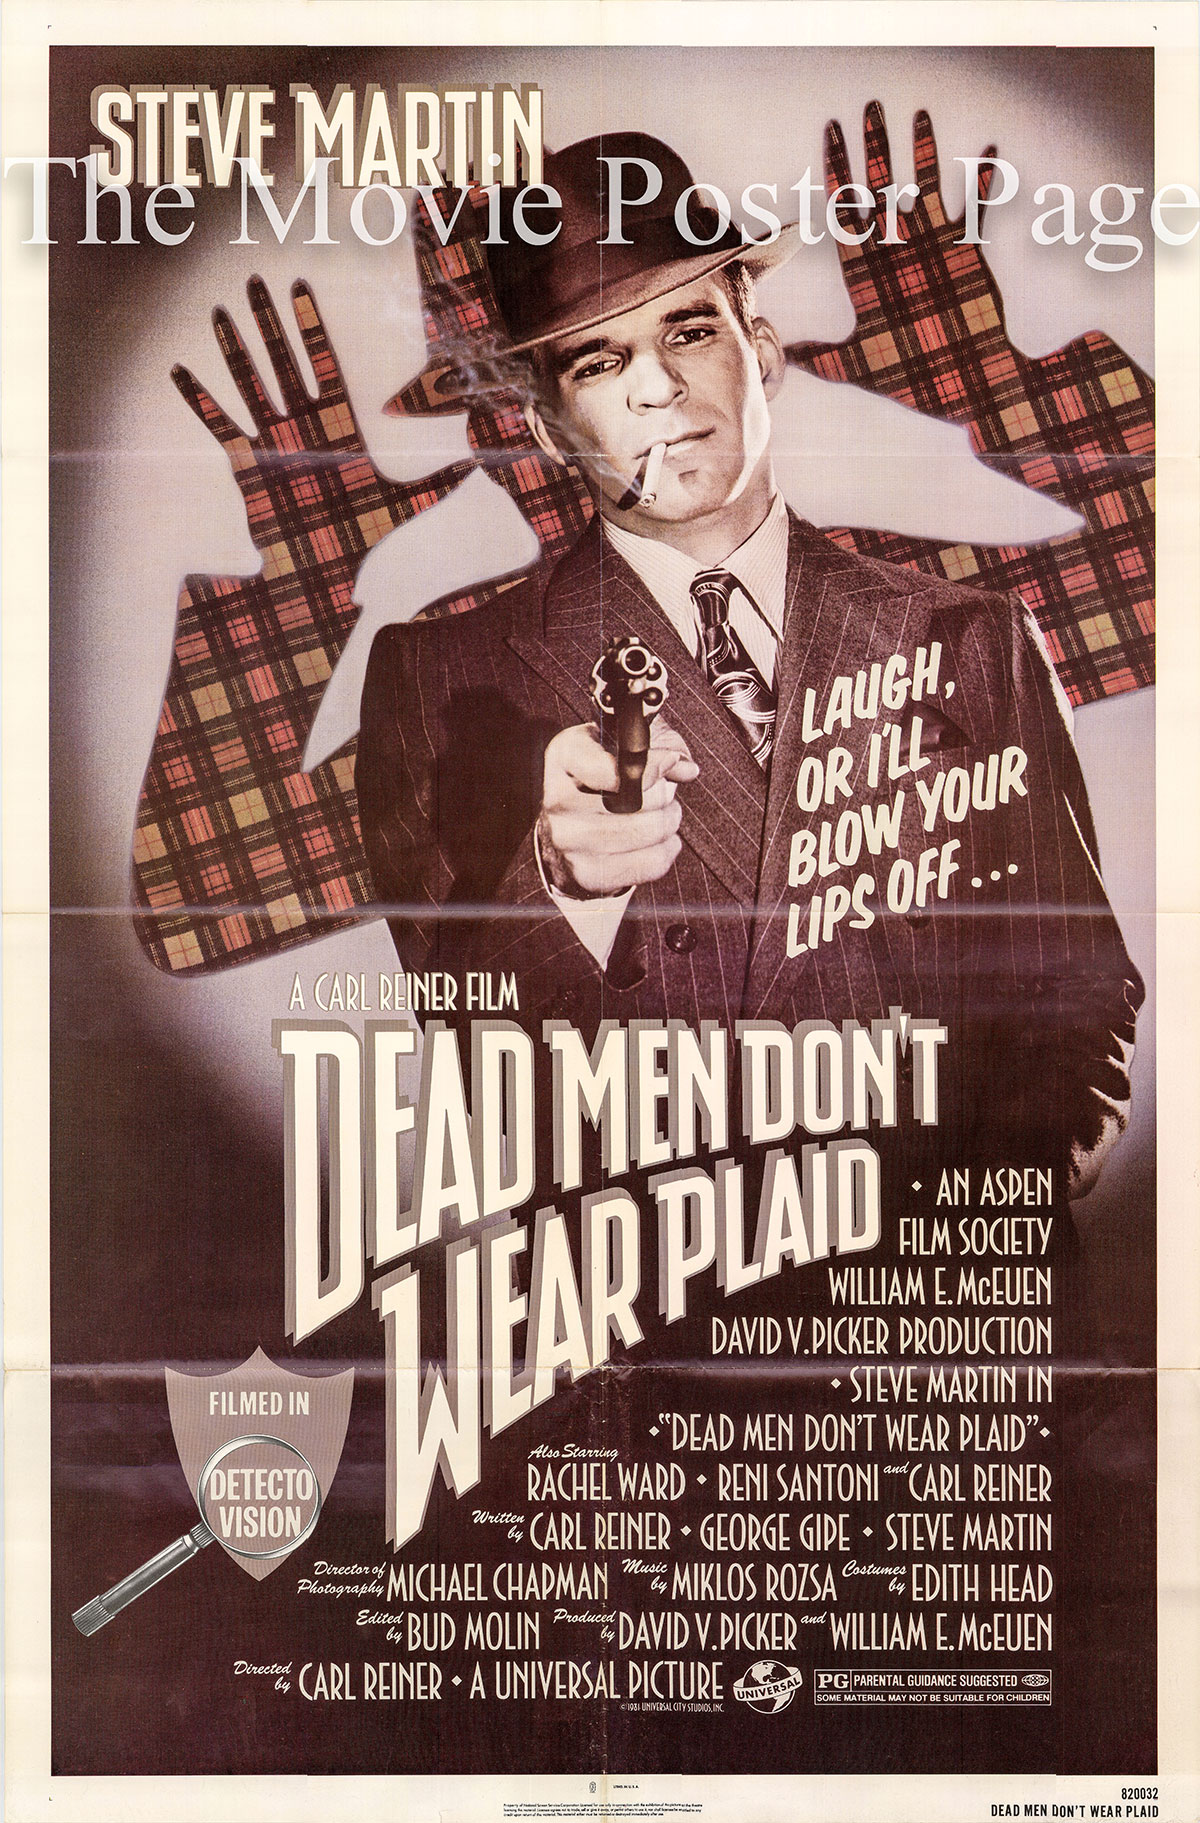 Pictured is a US one-sheet for the 1982 Carl Reiner film Dead Men Don't Wear Plaid starring Steve Martin as Rigby Reardon.